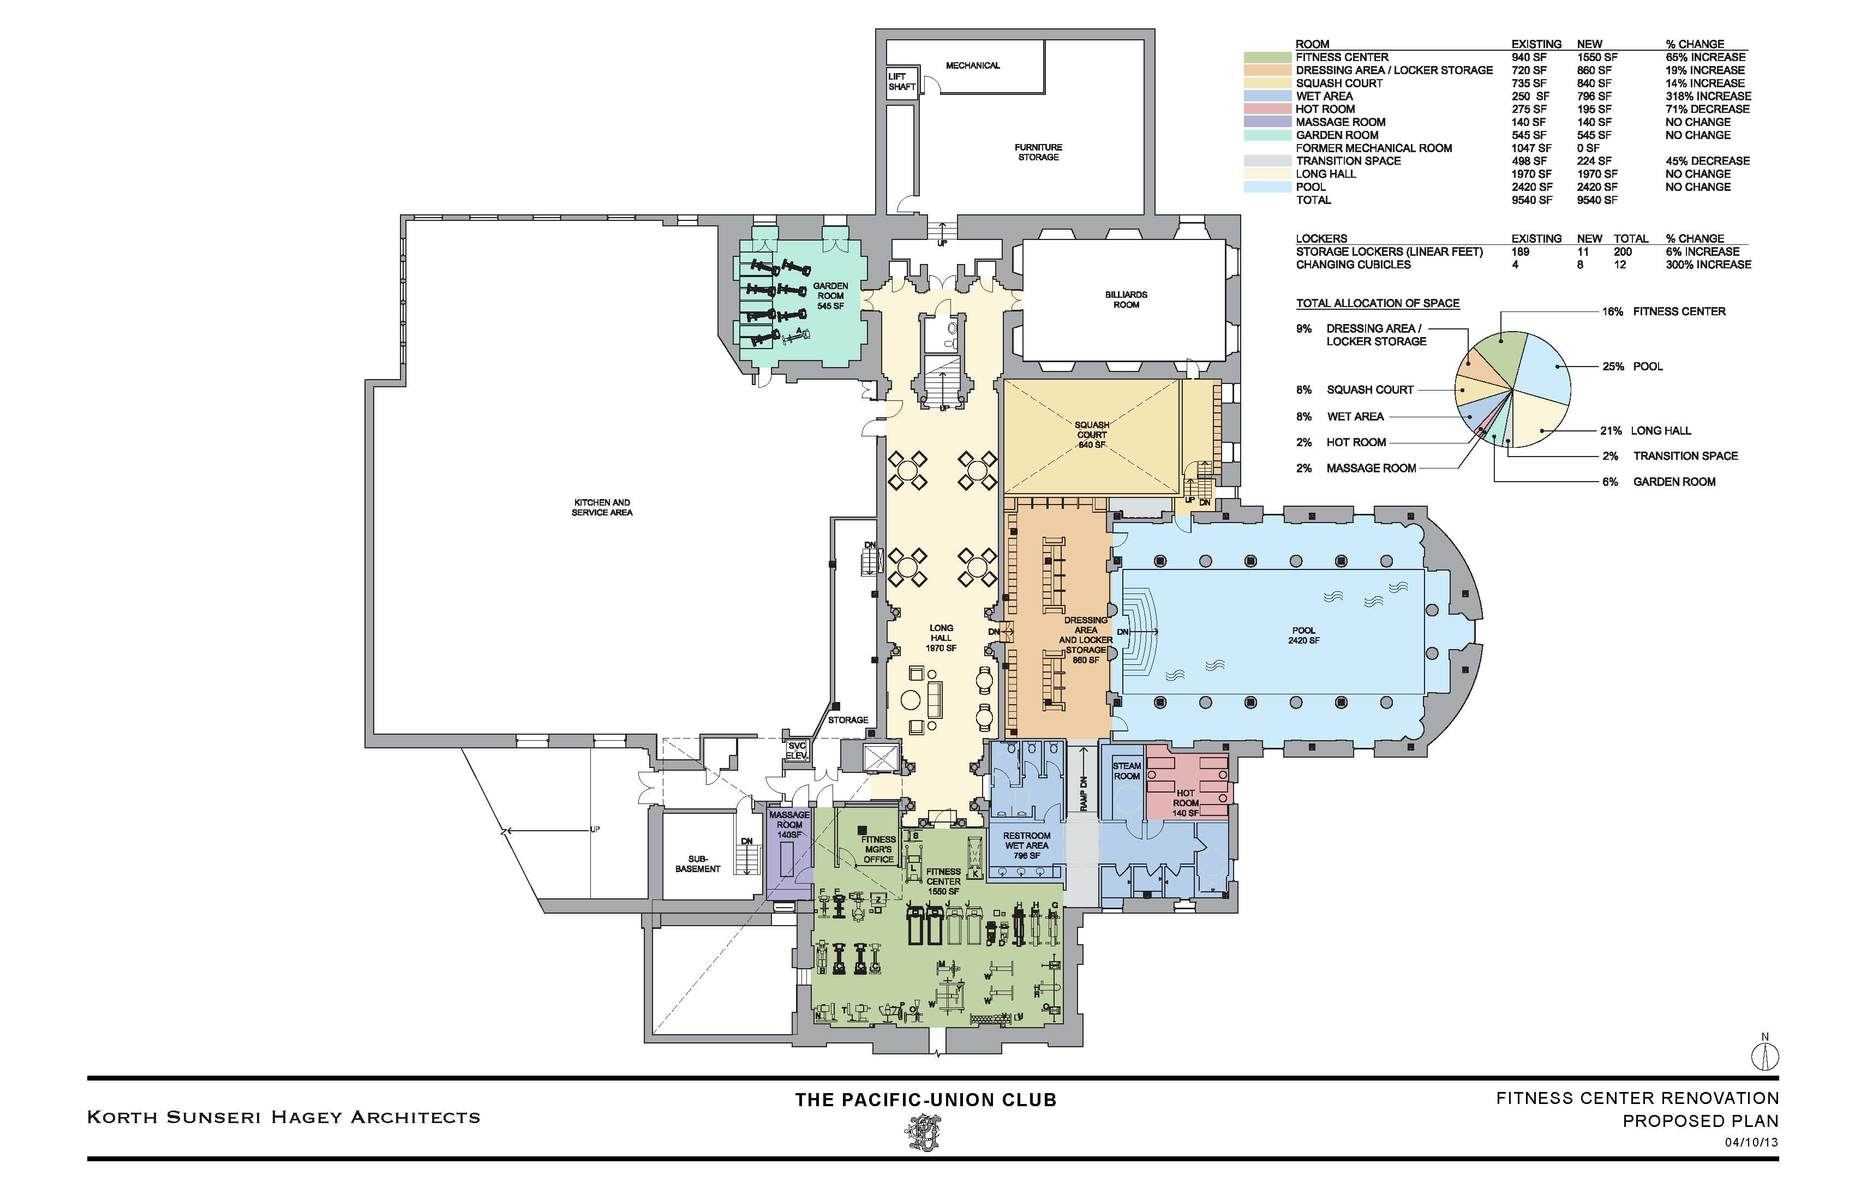 Pacific union club guest room and fitness center for Fitness center floor plan